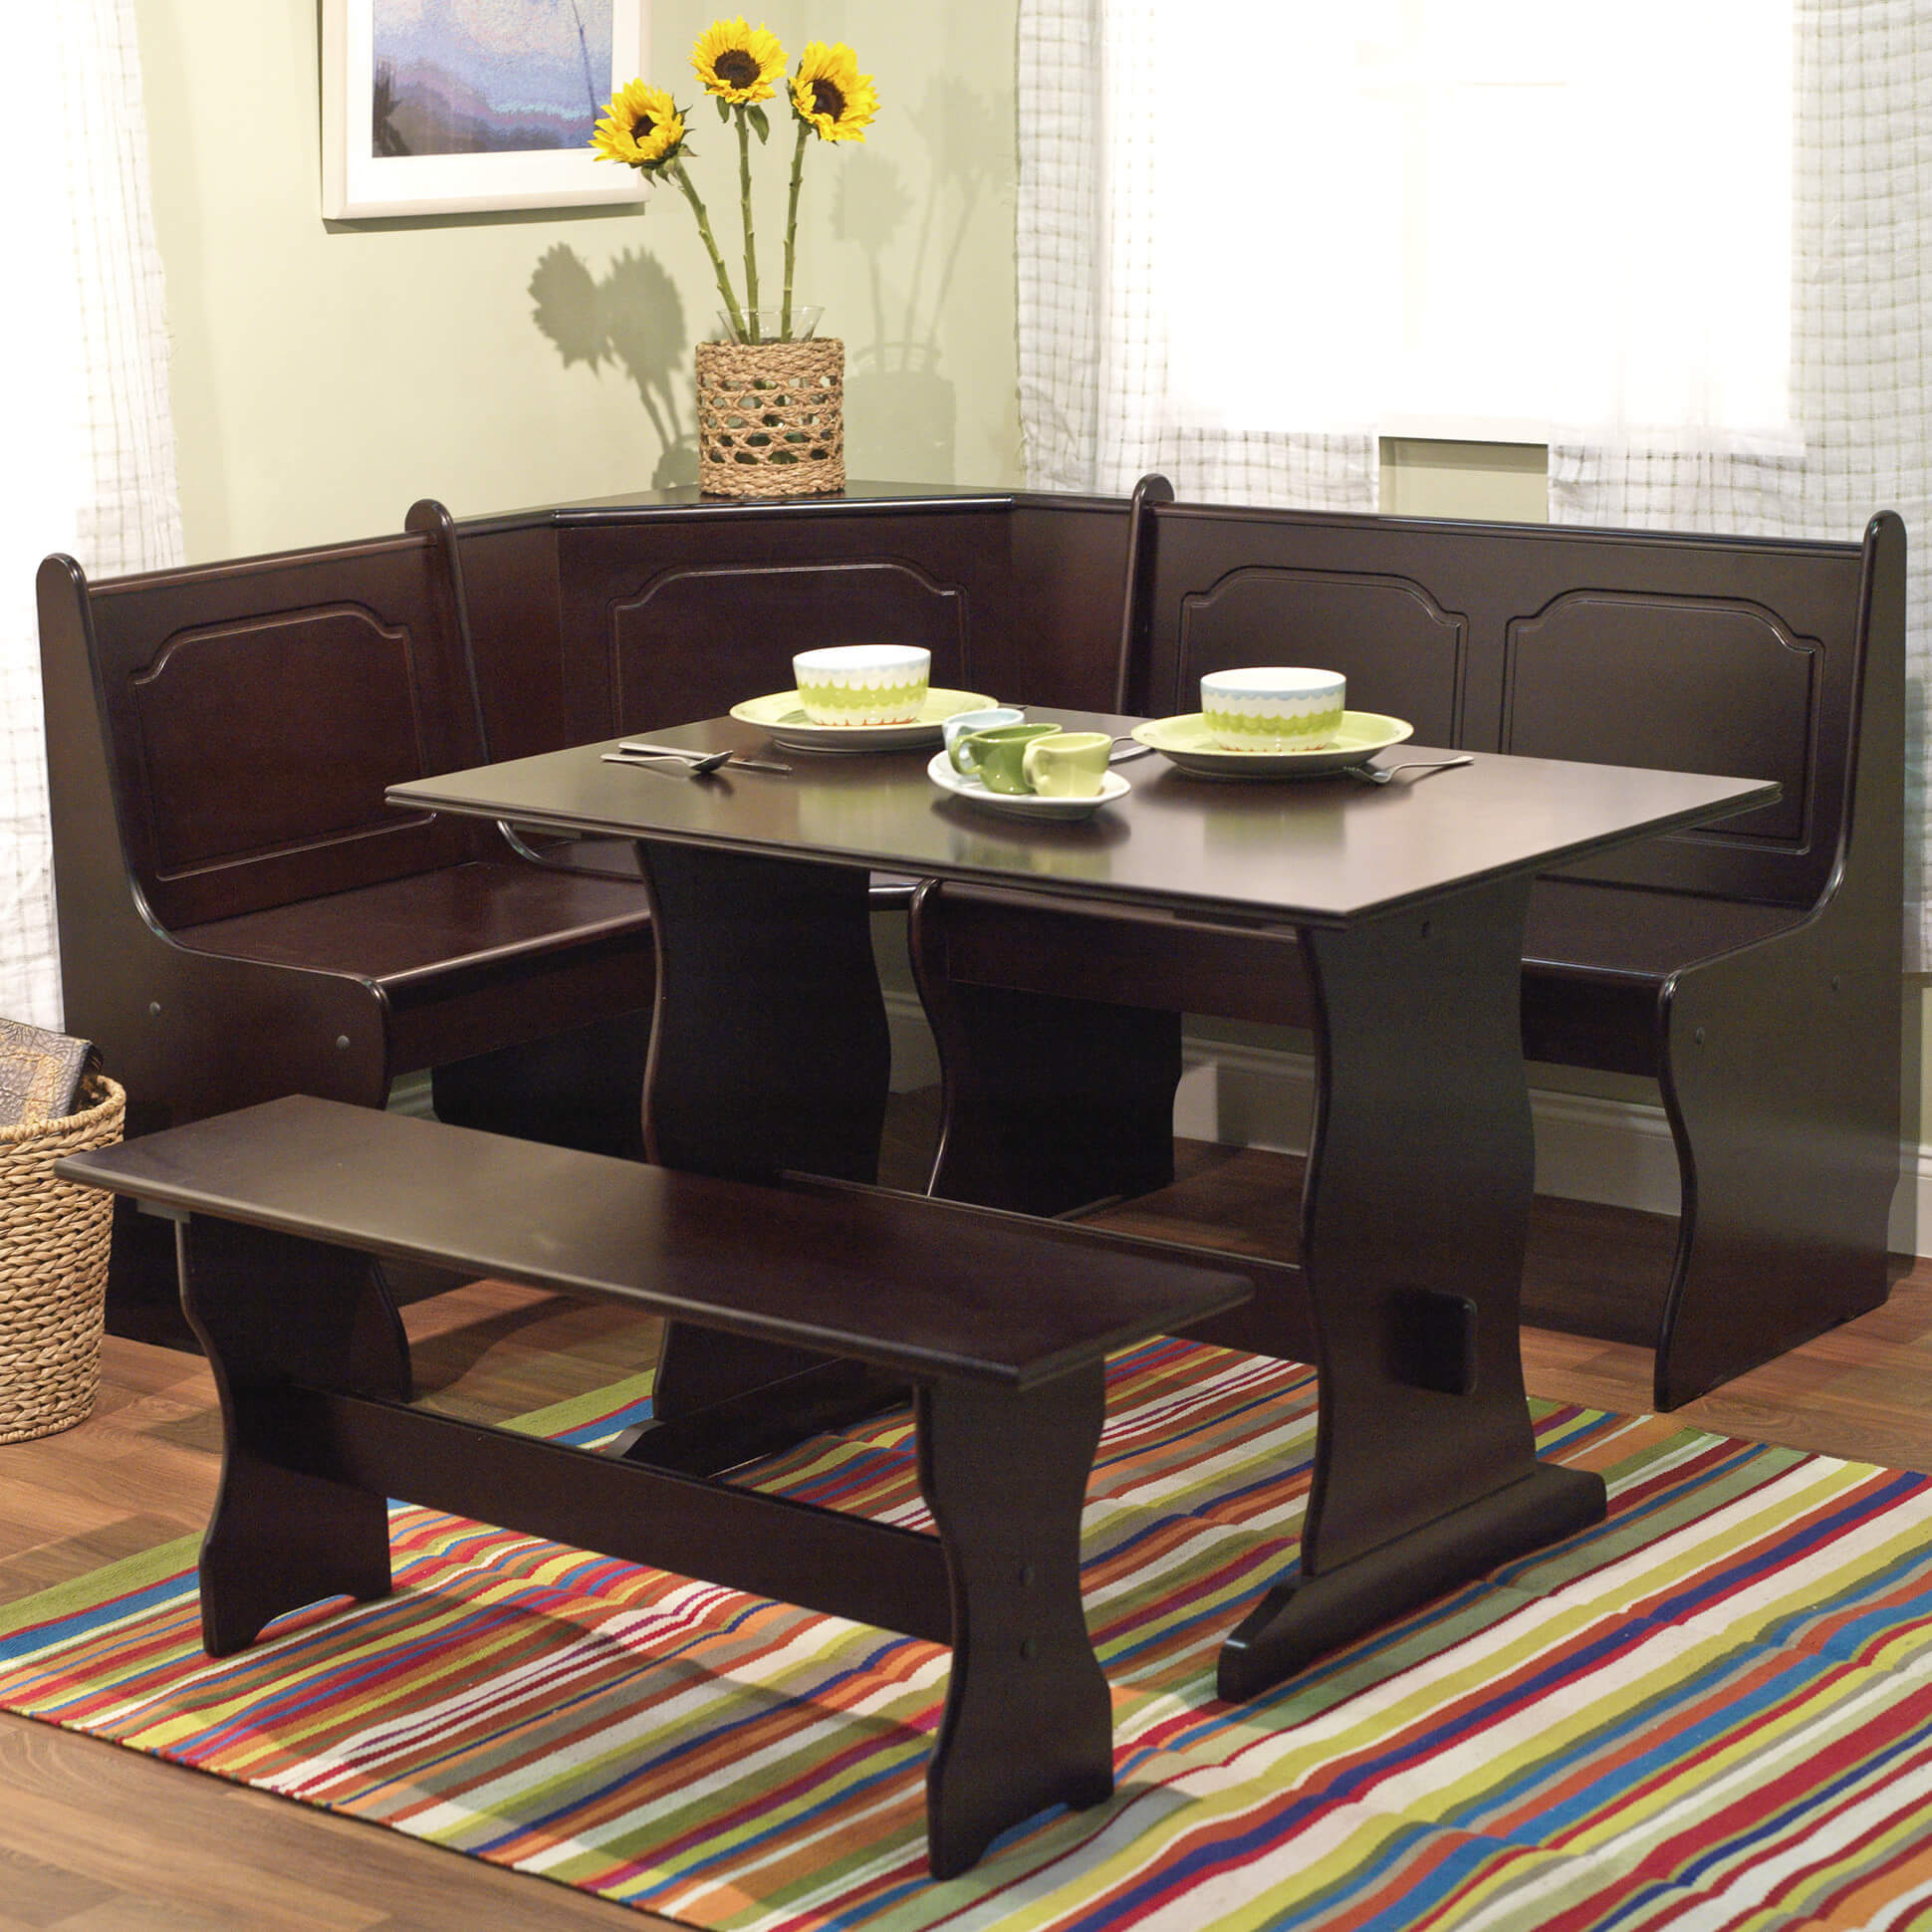 breakfast nook furniture sets kitchen table and chairs 2 TMS Breakfast Nook